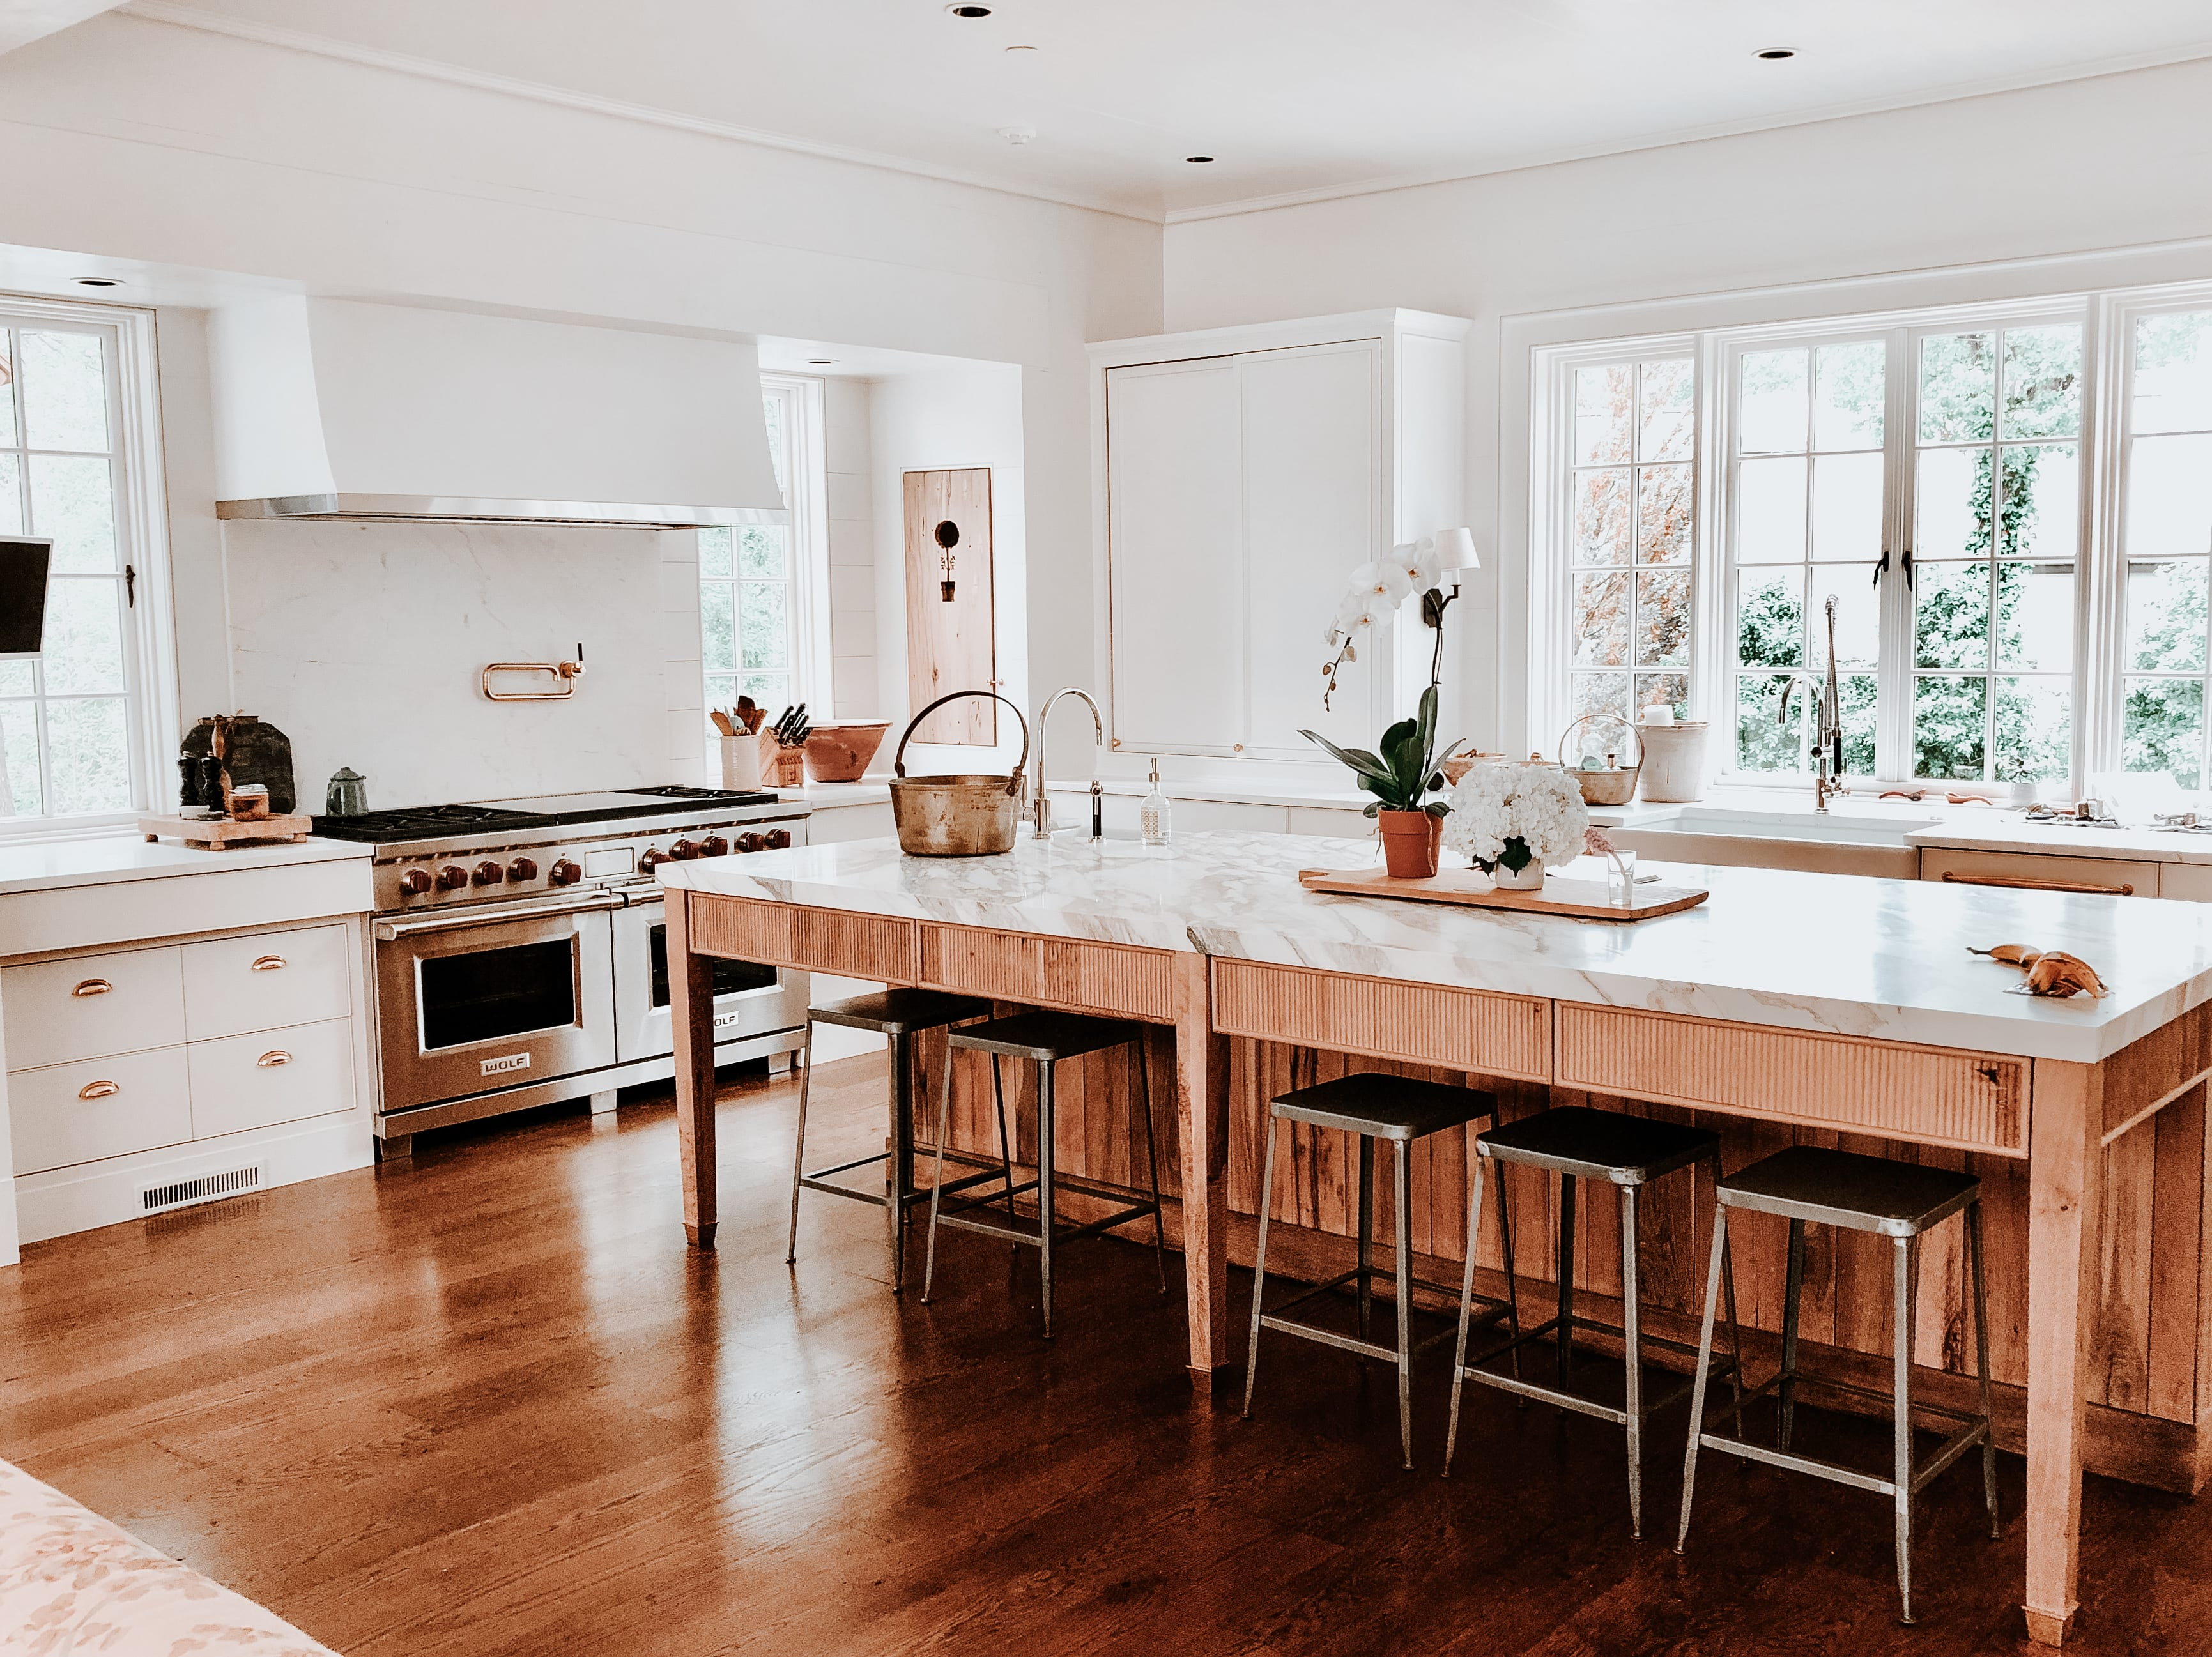 Modern White kitchen with fluted wooden cabinets full view